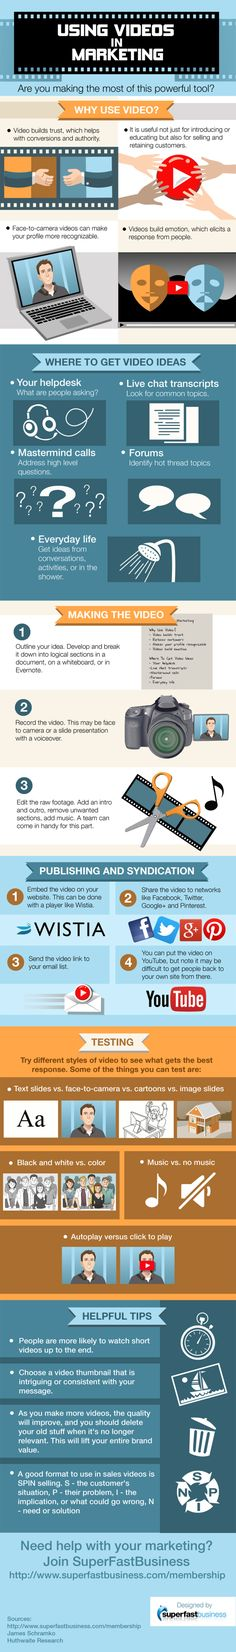 Why Your Business Should Make Use of Video in Marketing [Infographic] #InternetMarketing